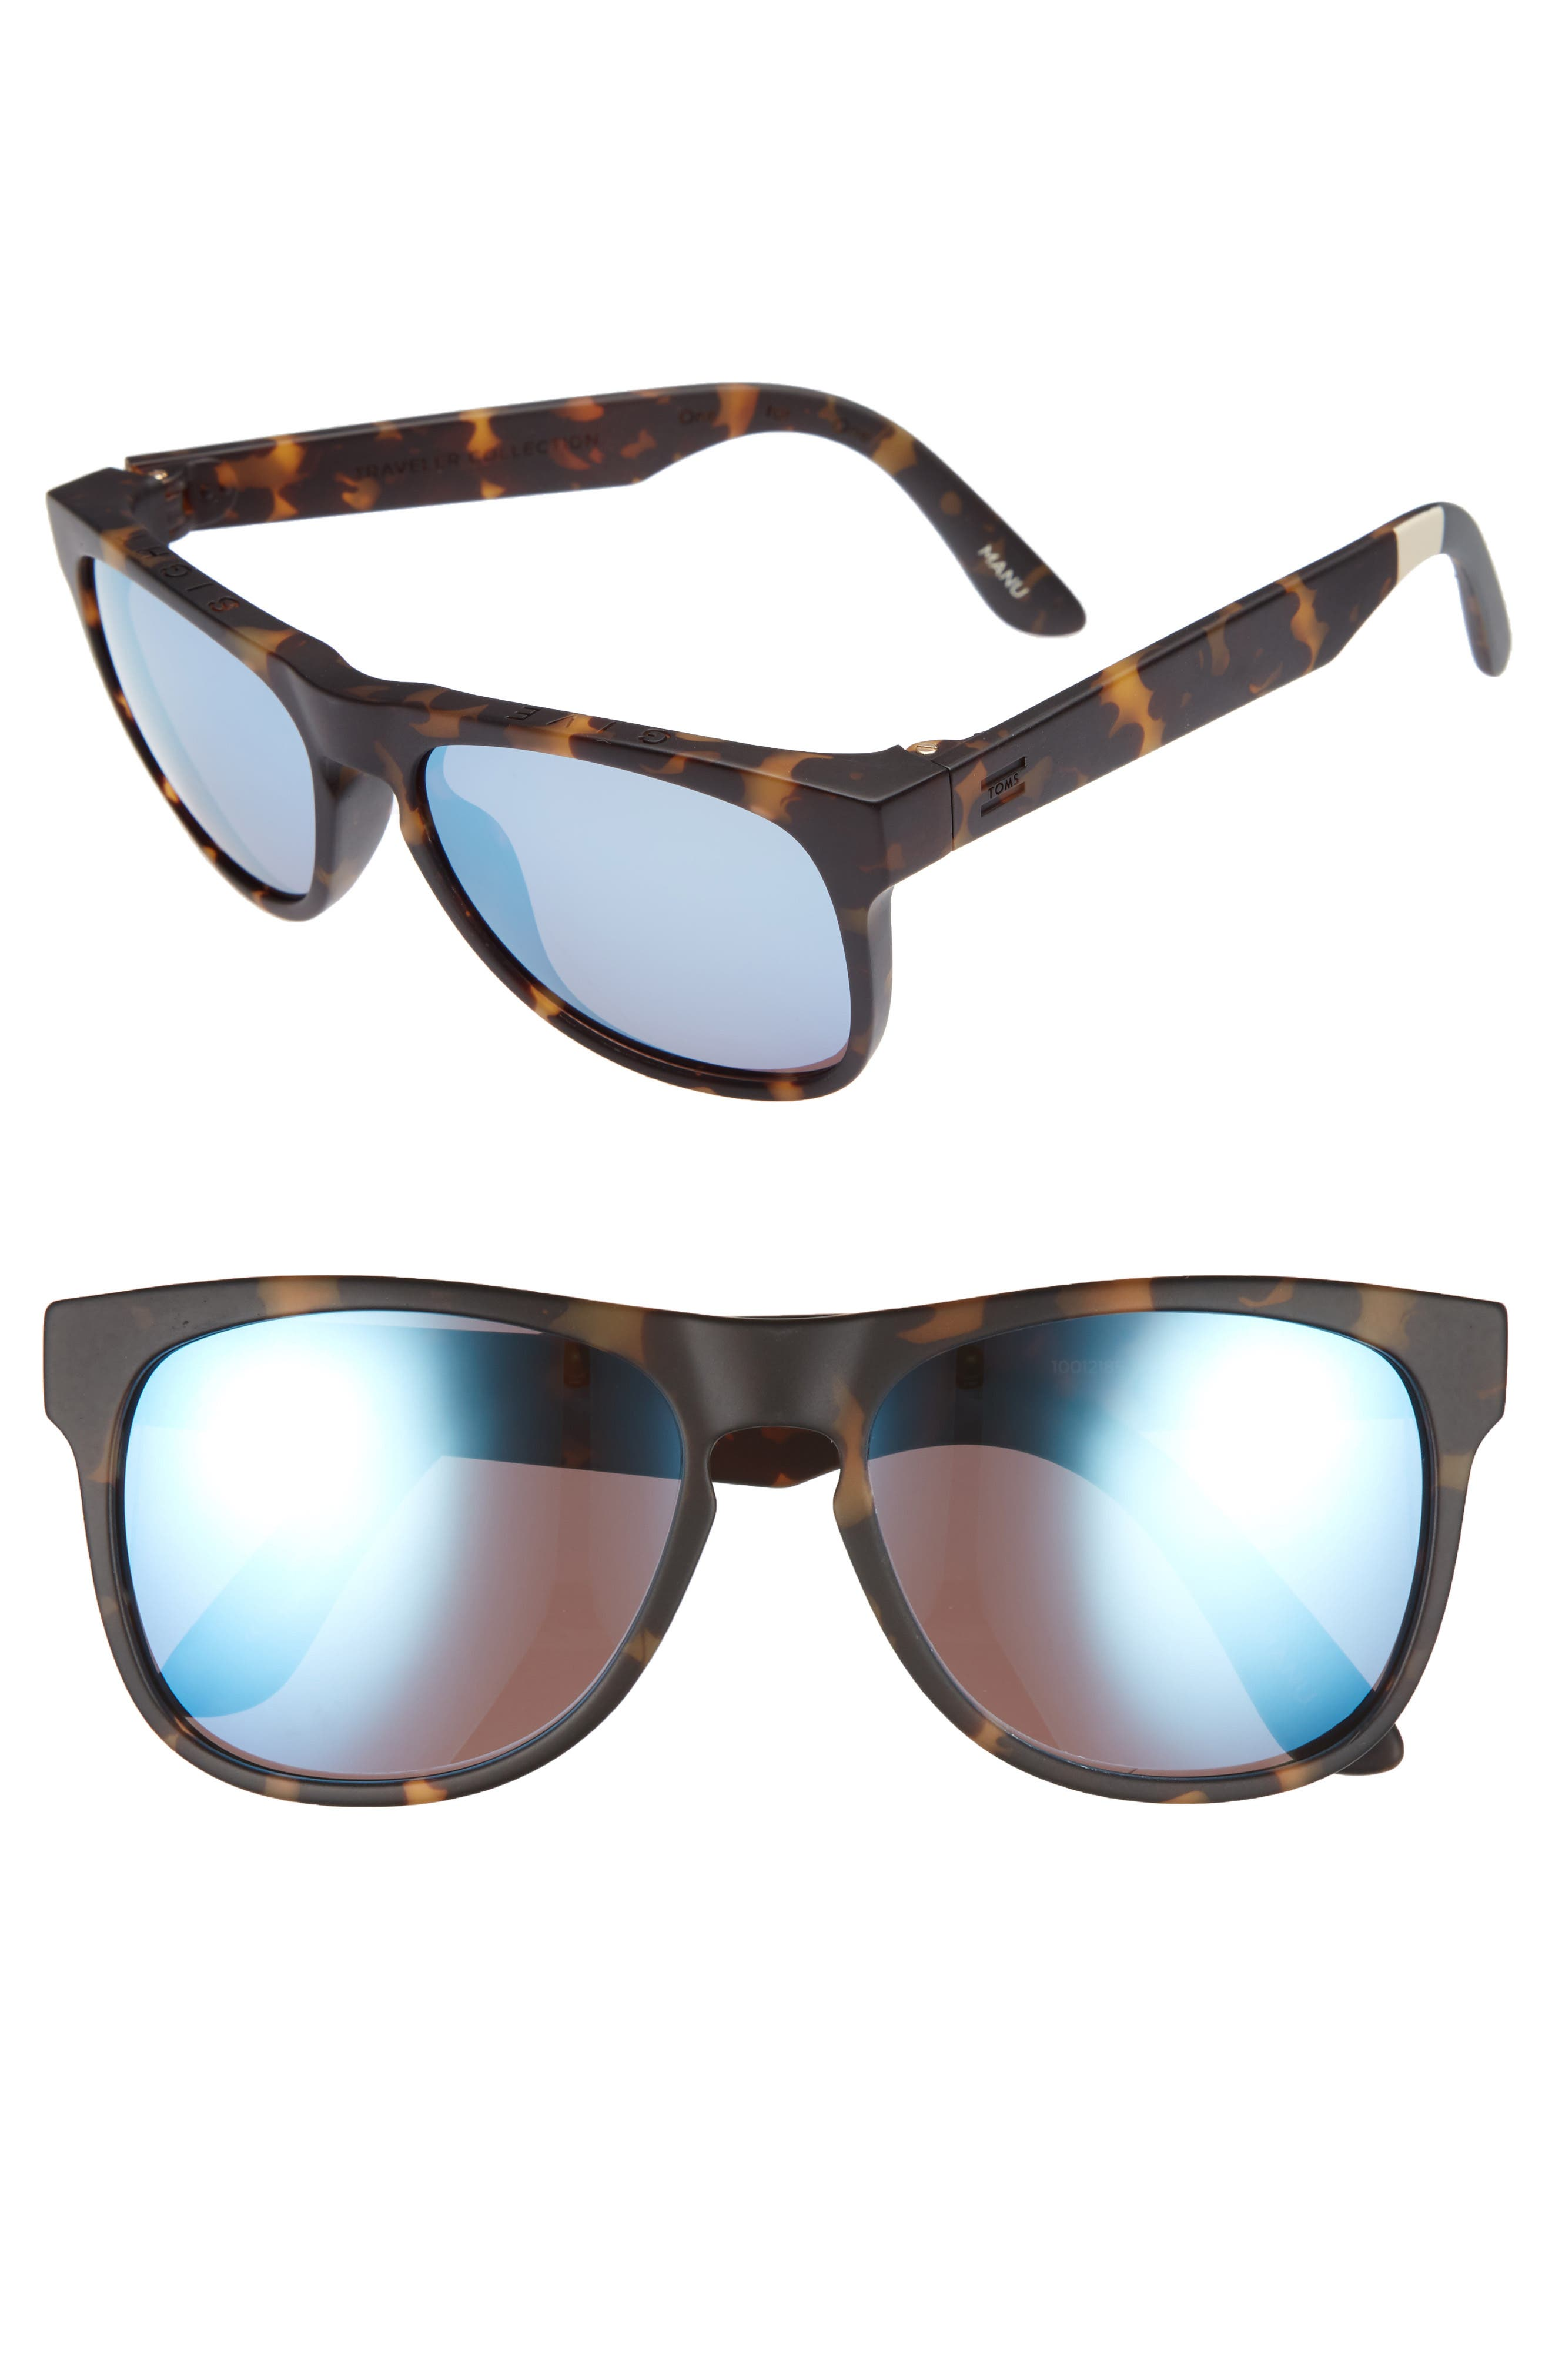 Manu 57mm Sunglasses,                         Main,                         color, Blonde Tortoise